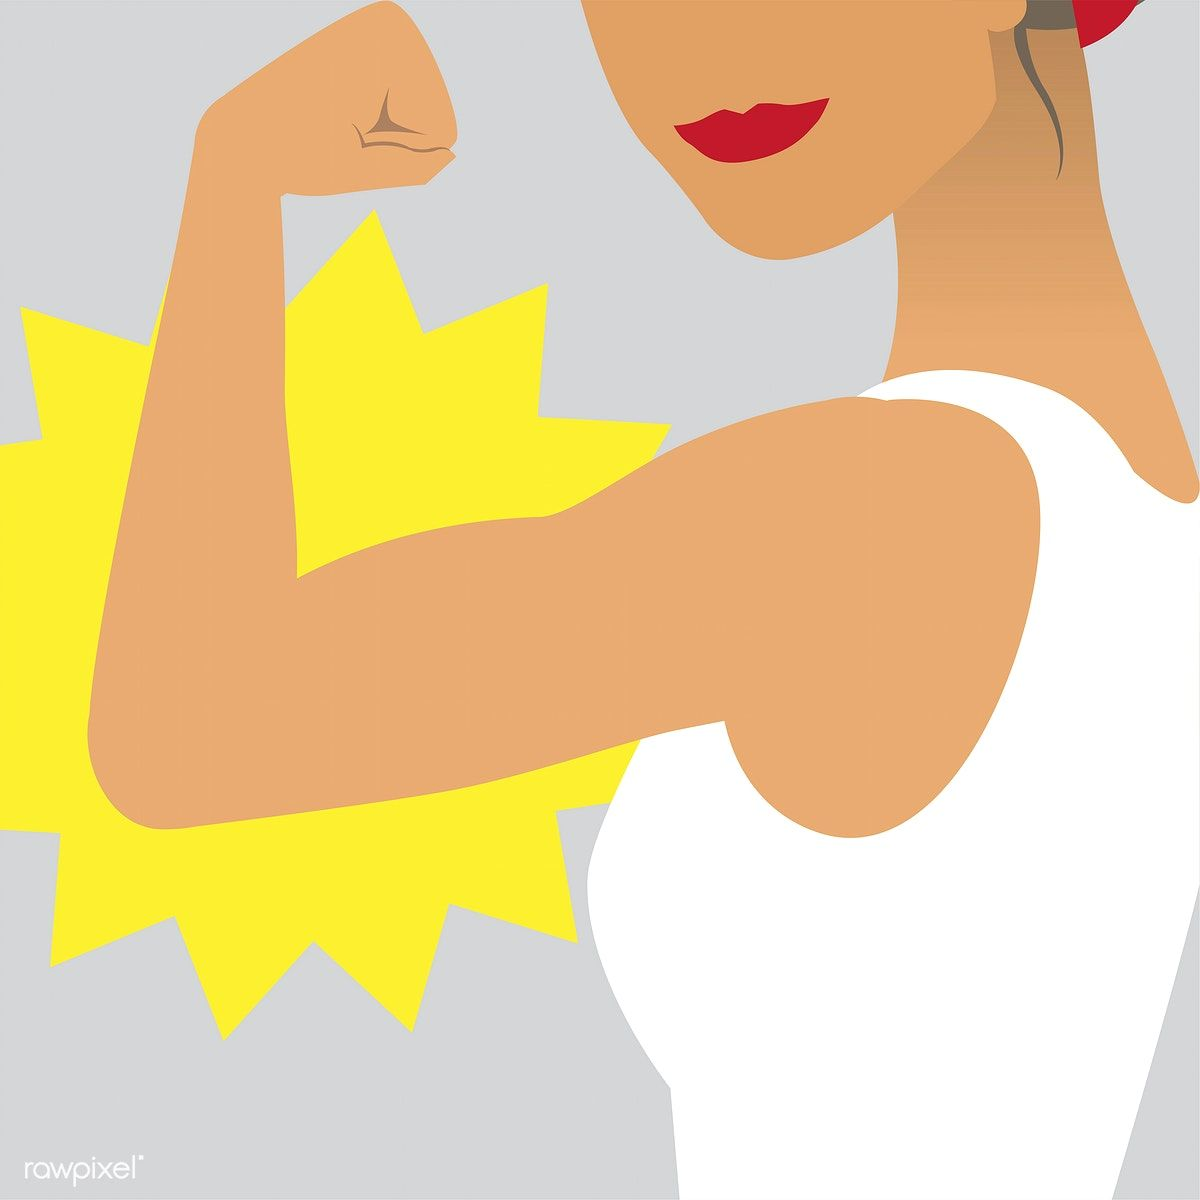 Female power and strength illustration | free image by rawpixel.com |  Strength illustration, Illustration, Girl power illustration